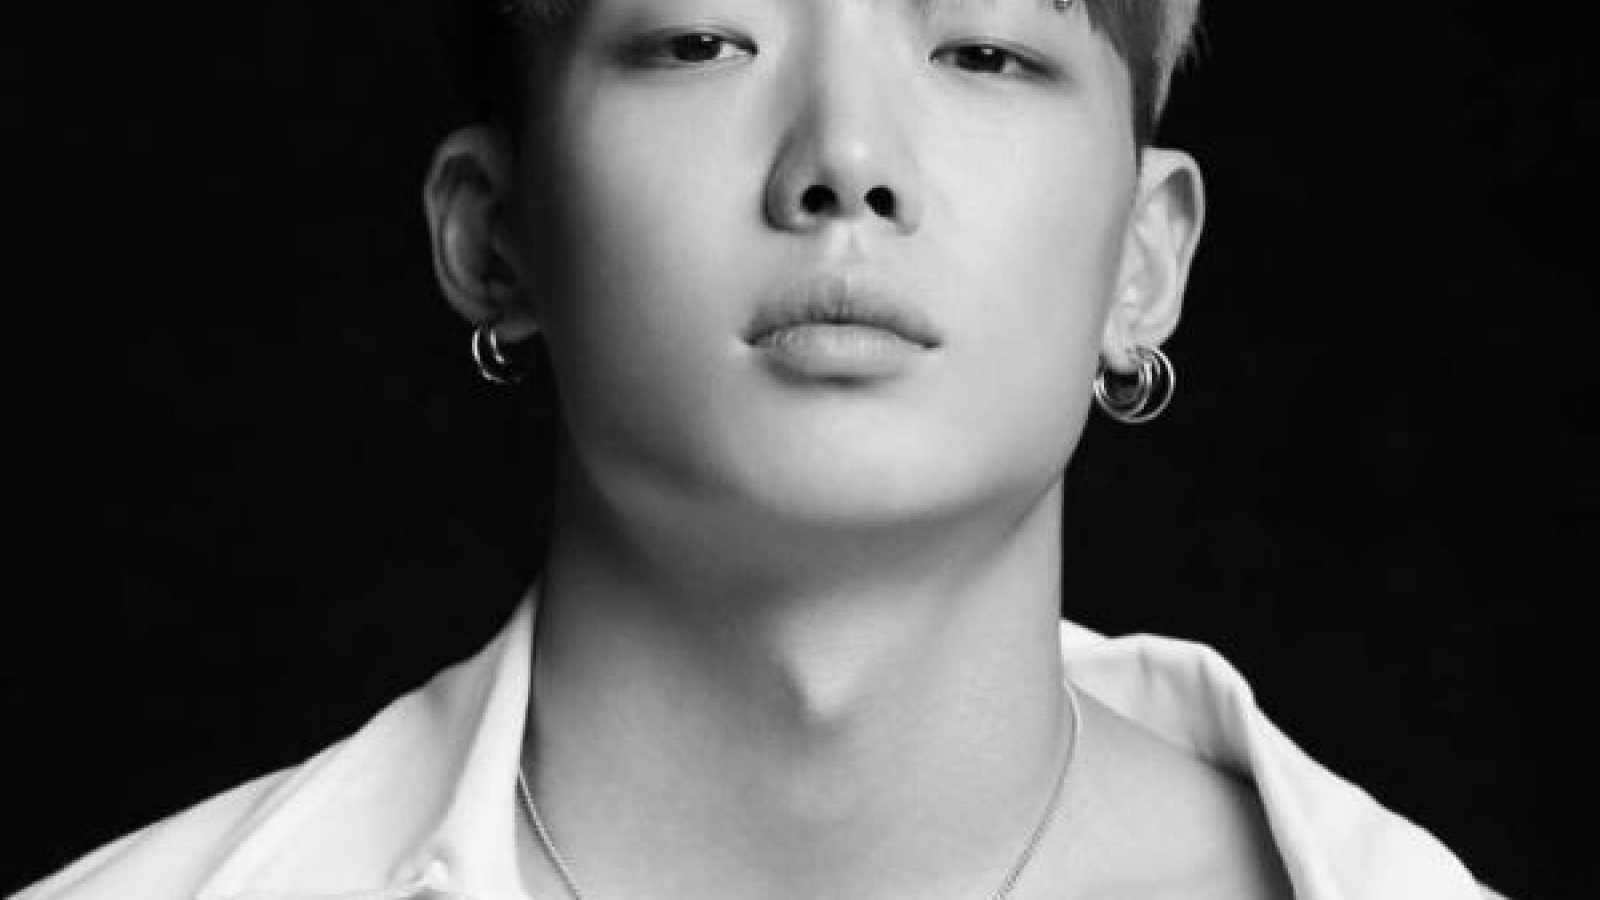 Bobby © YG Entertainment. All rights reserved